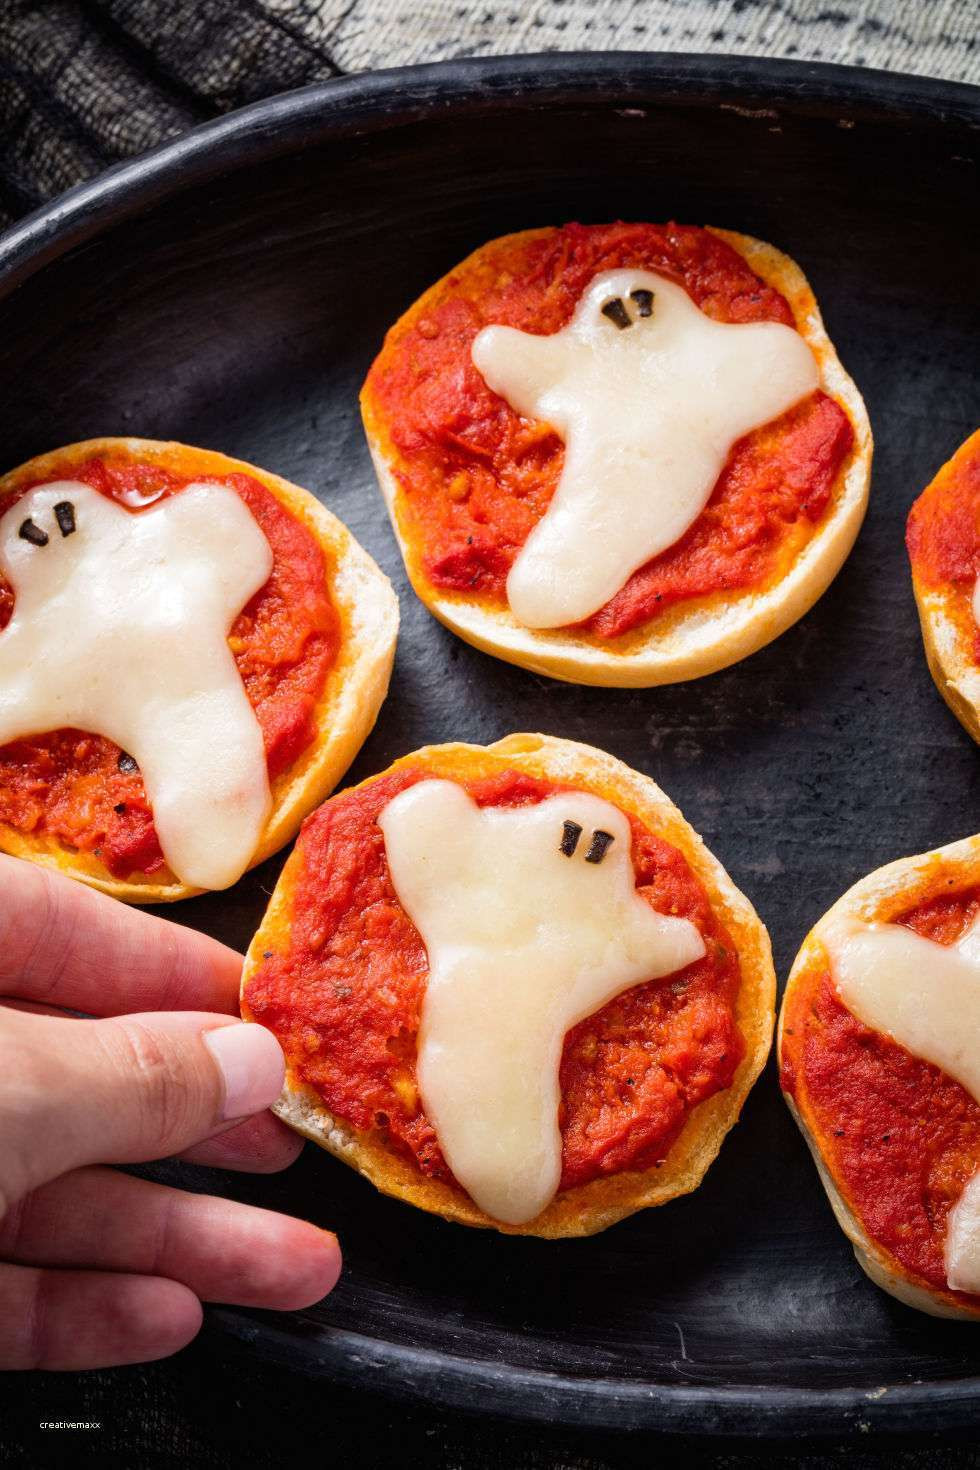 Halloween Party Menu Ideas For Adults  Inspirational Halloween Party Food Table Ideas Creative